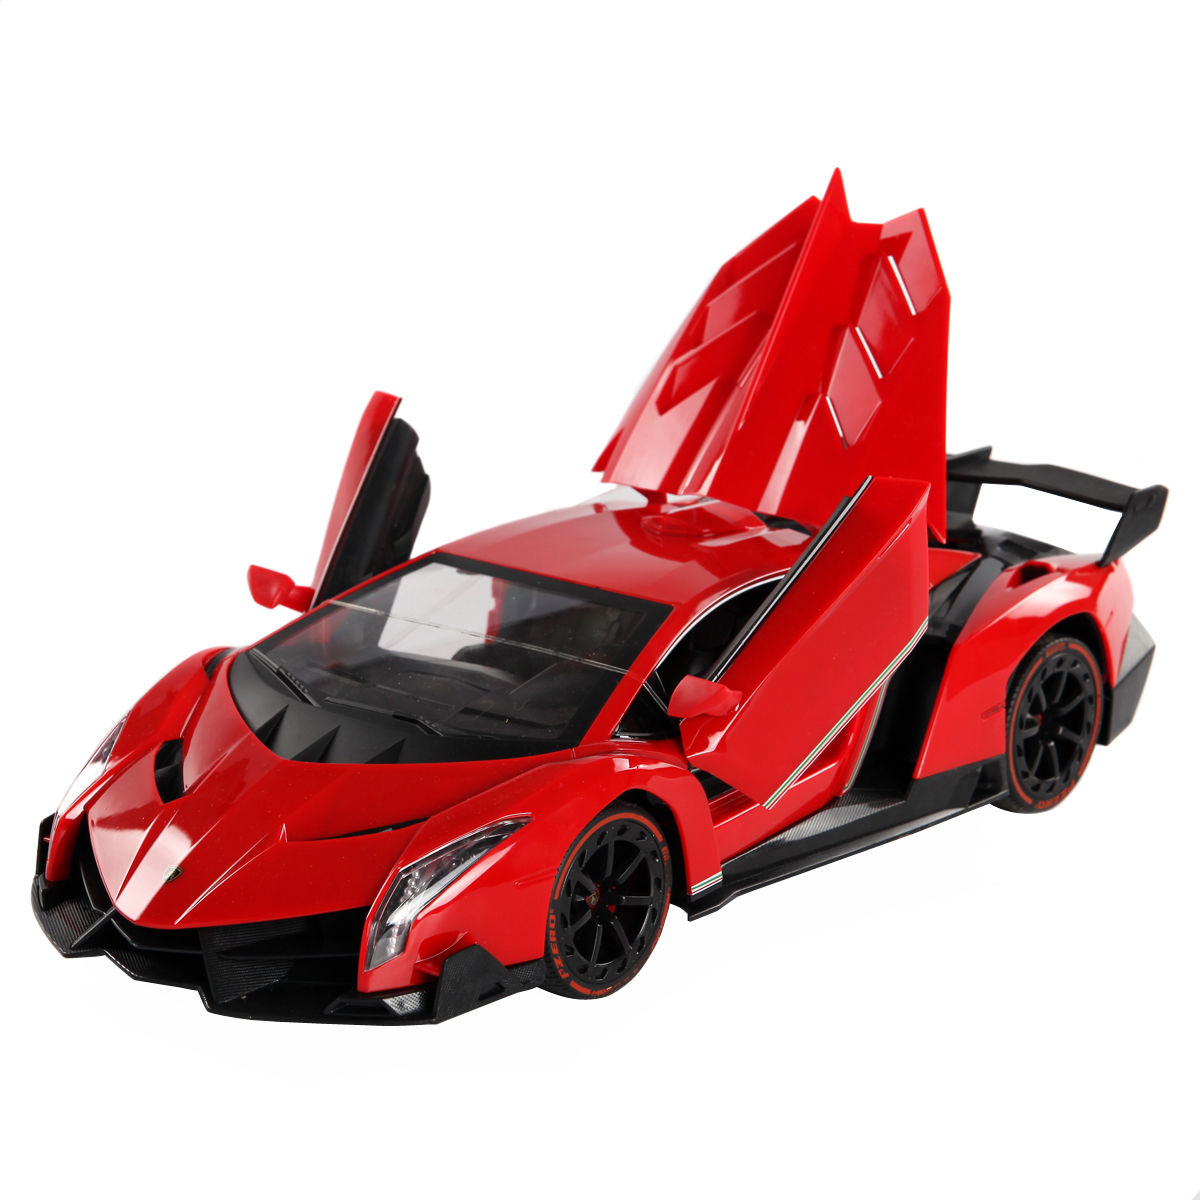 Costway 1:14 Lamborghini Veneno RC Car Gravity Sensor Dangling Radio Remote Control